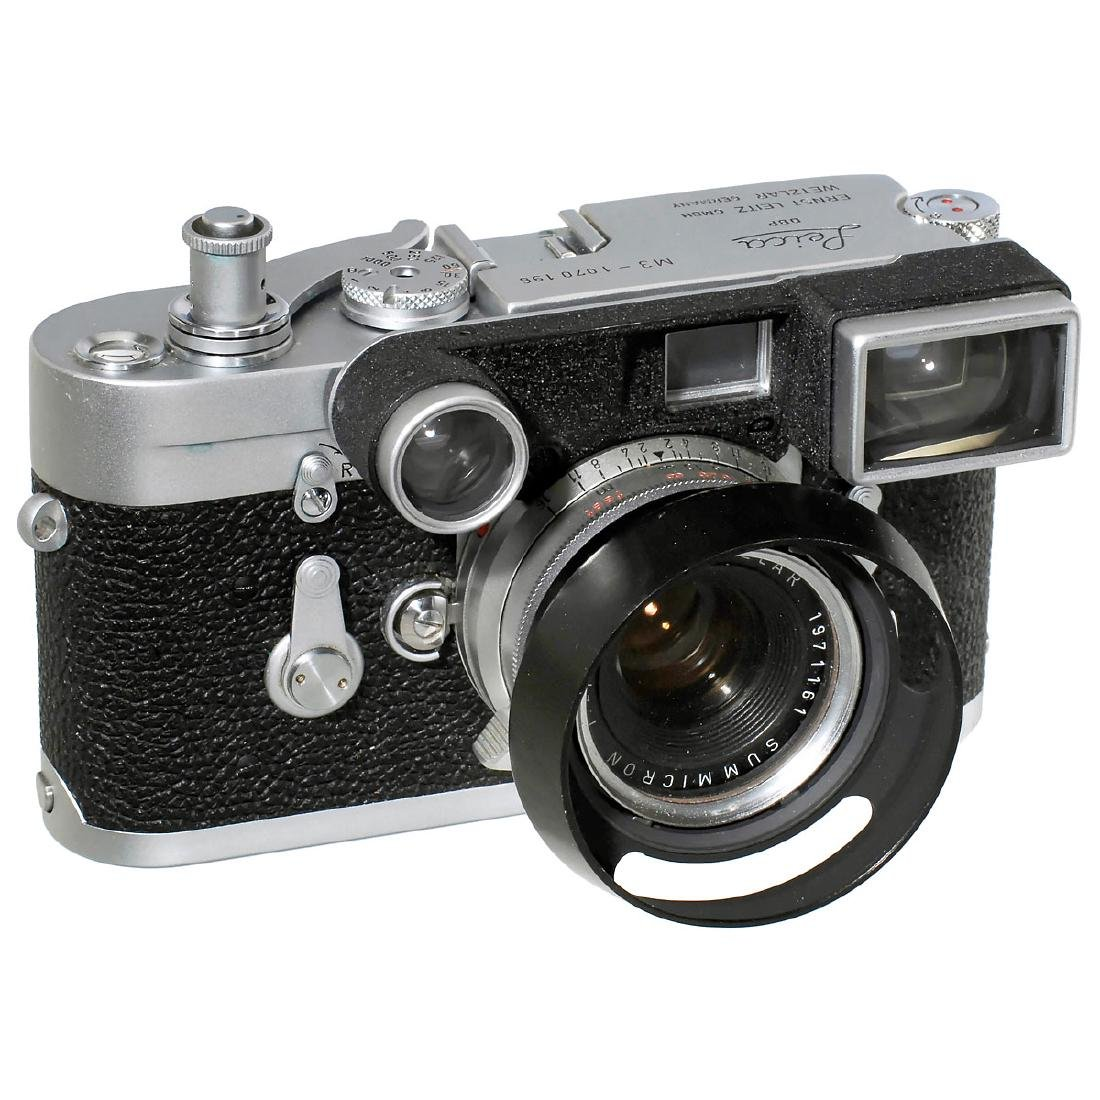 Leica M3 with Summicron 2/35 mm, 1963